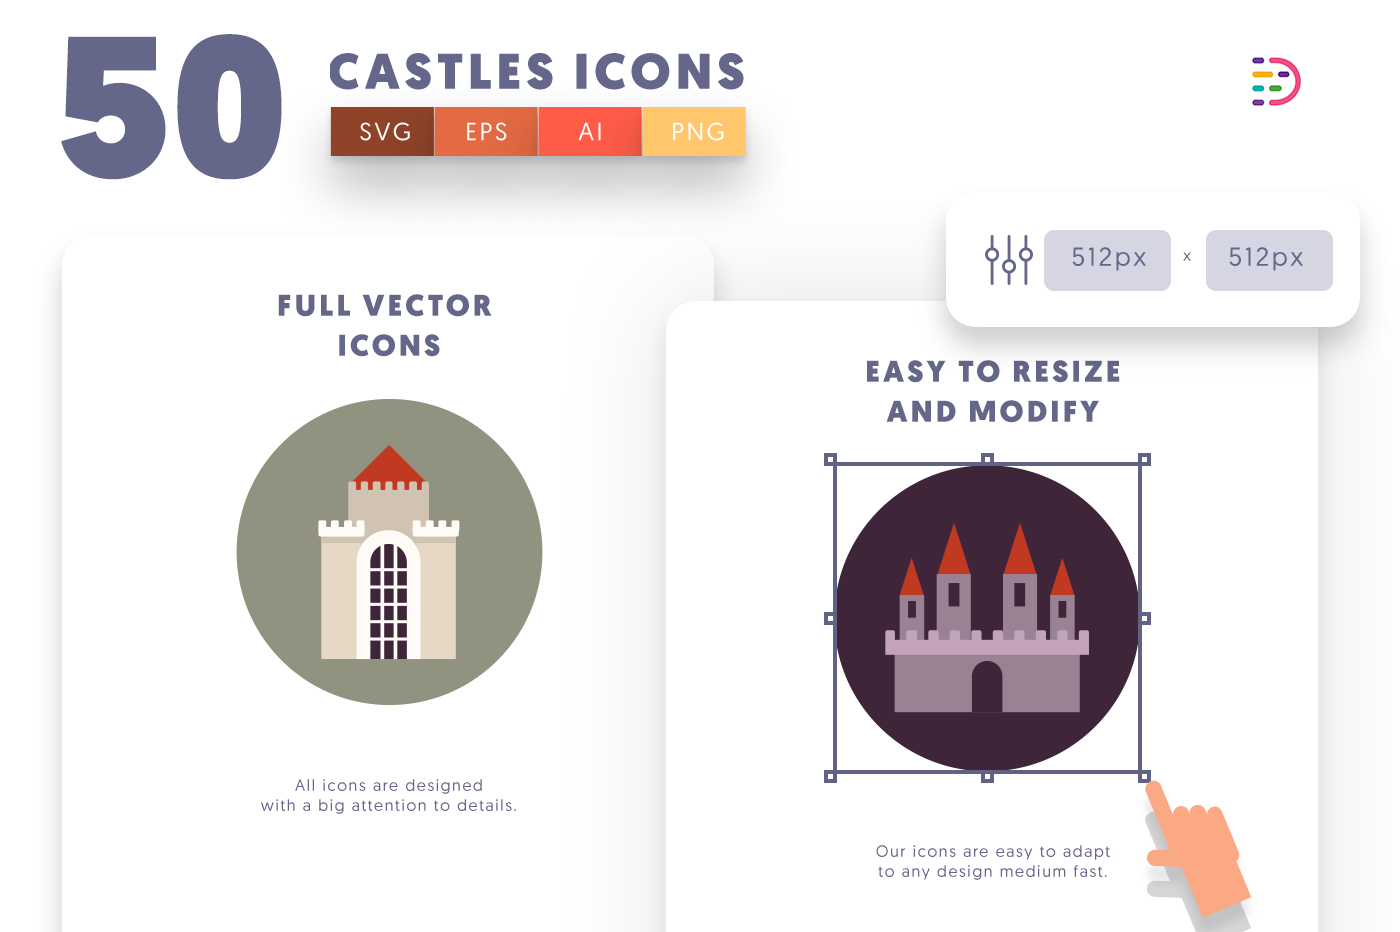 Customizable and vector 50 Castle Icons